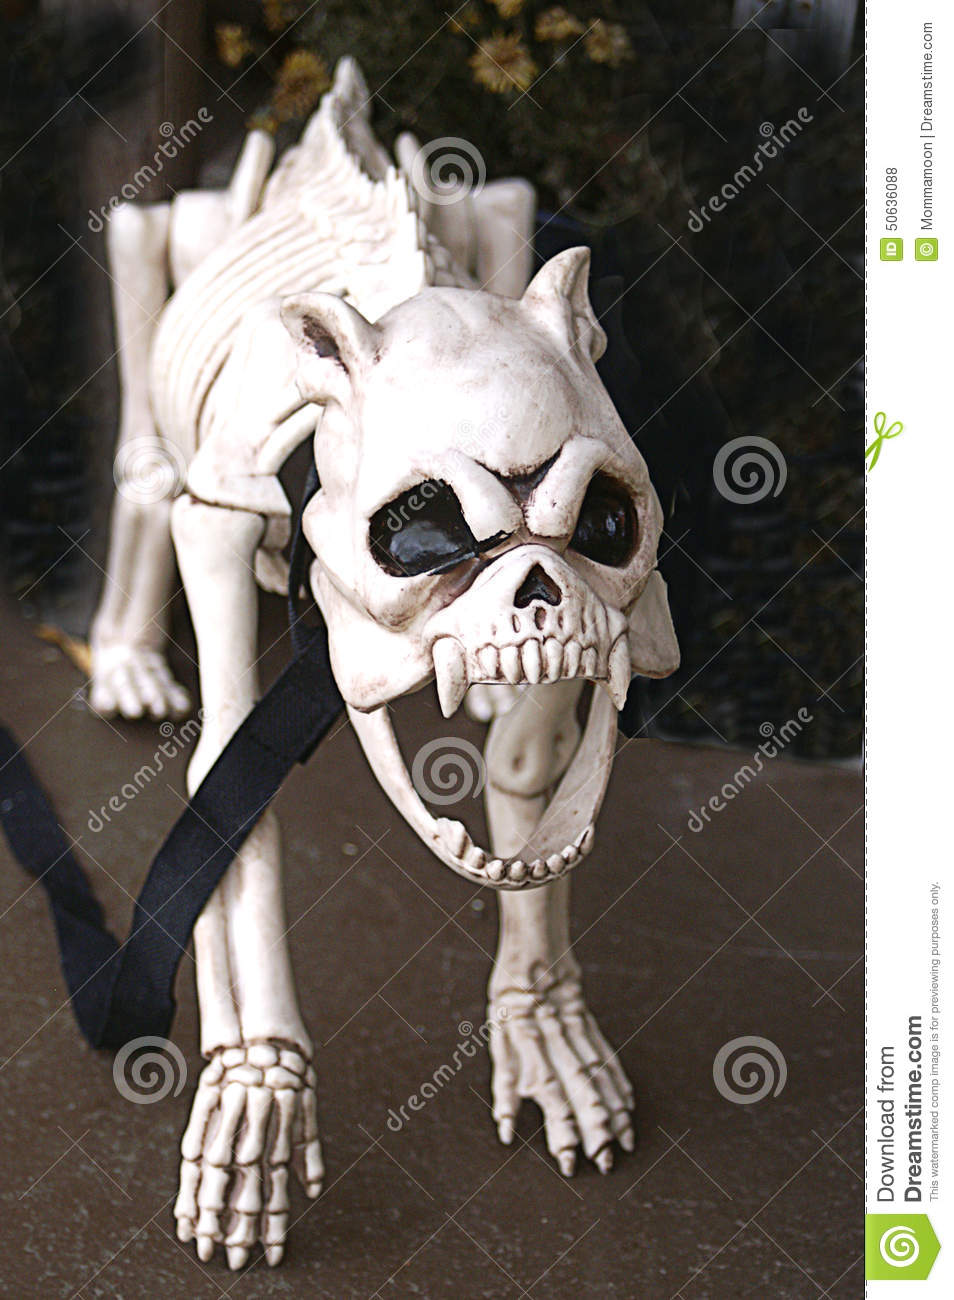 Skeleton of Snarling Dog